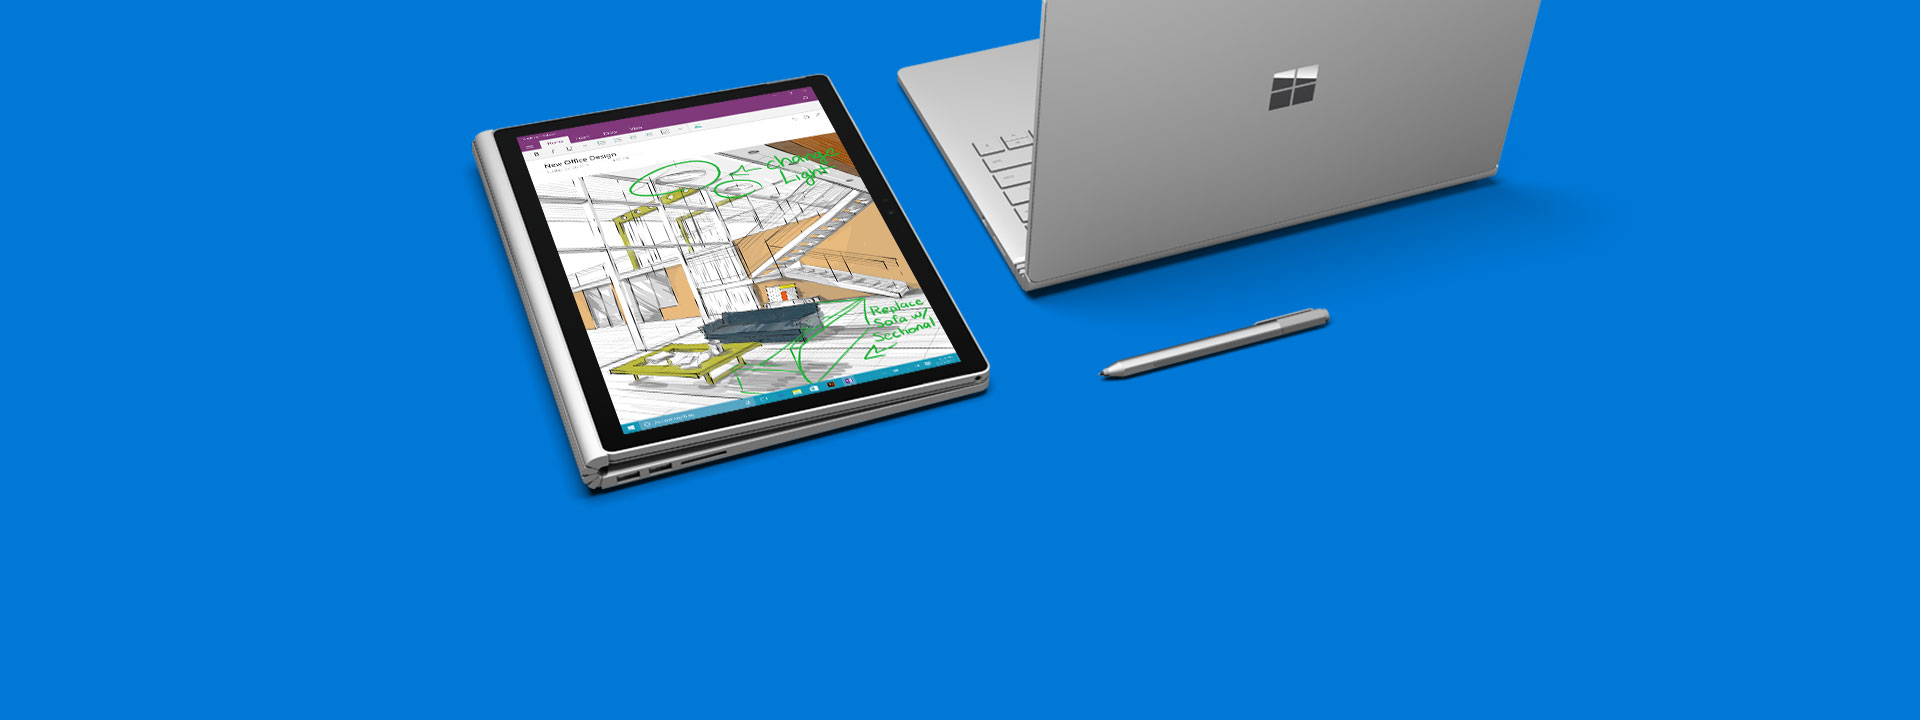 Learn more about Surface Book.